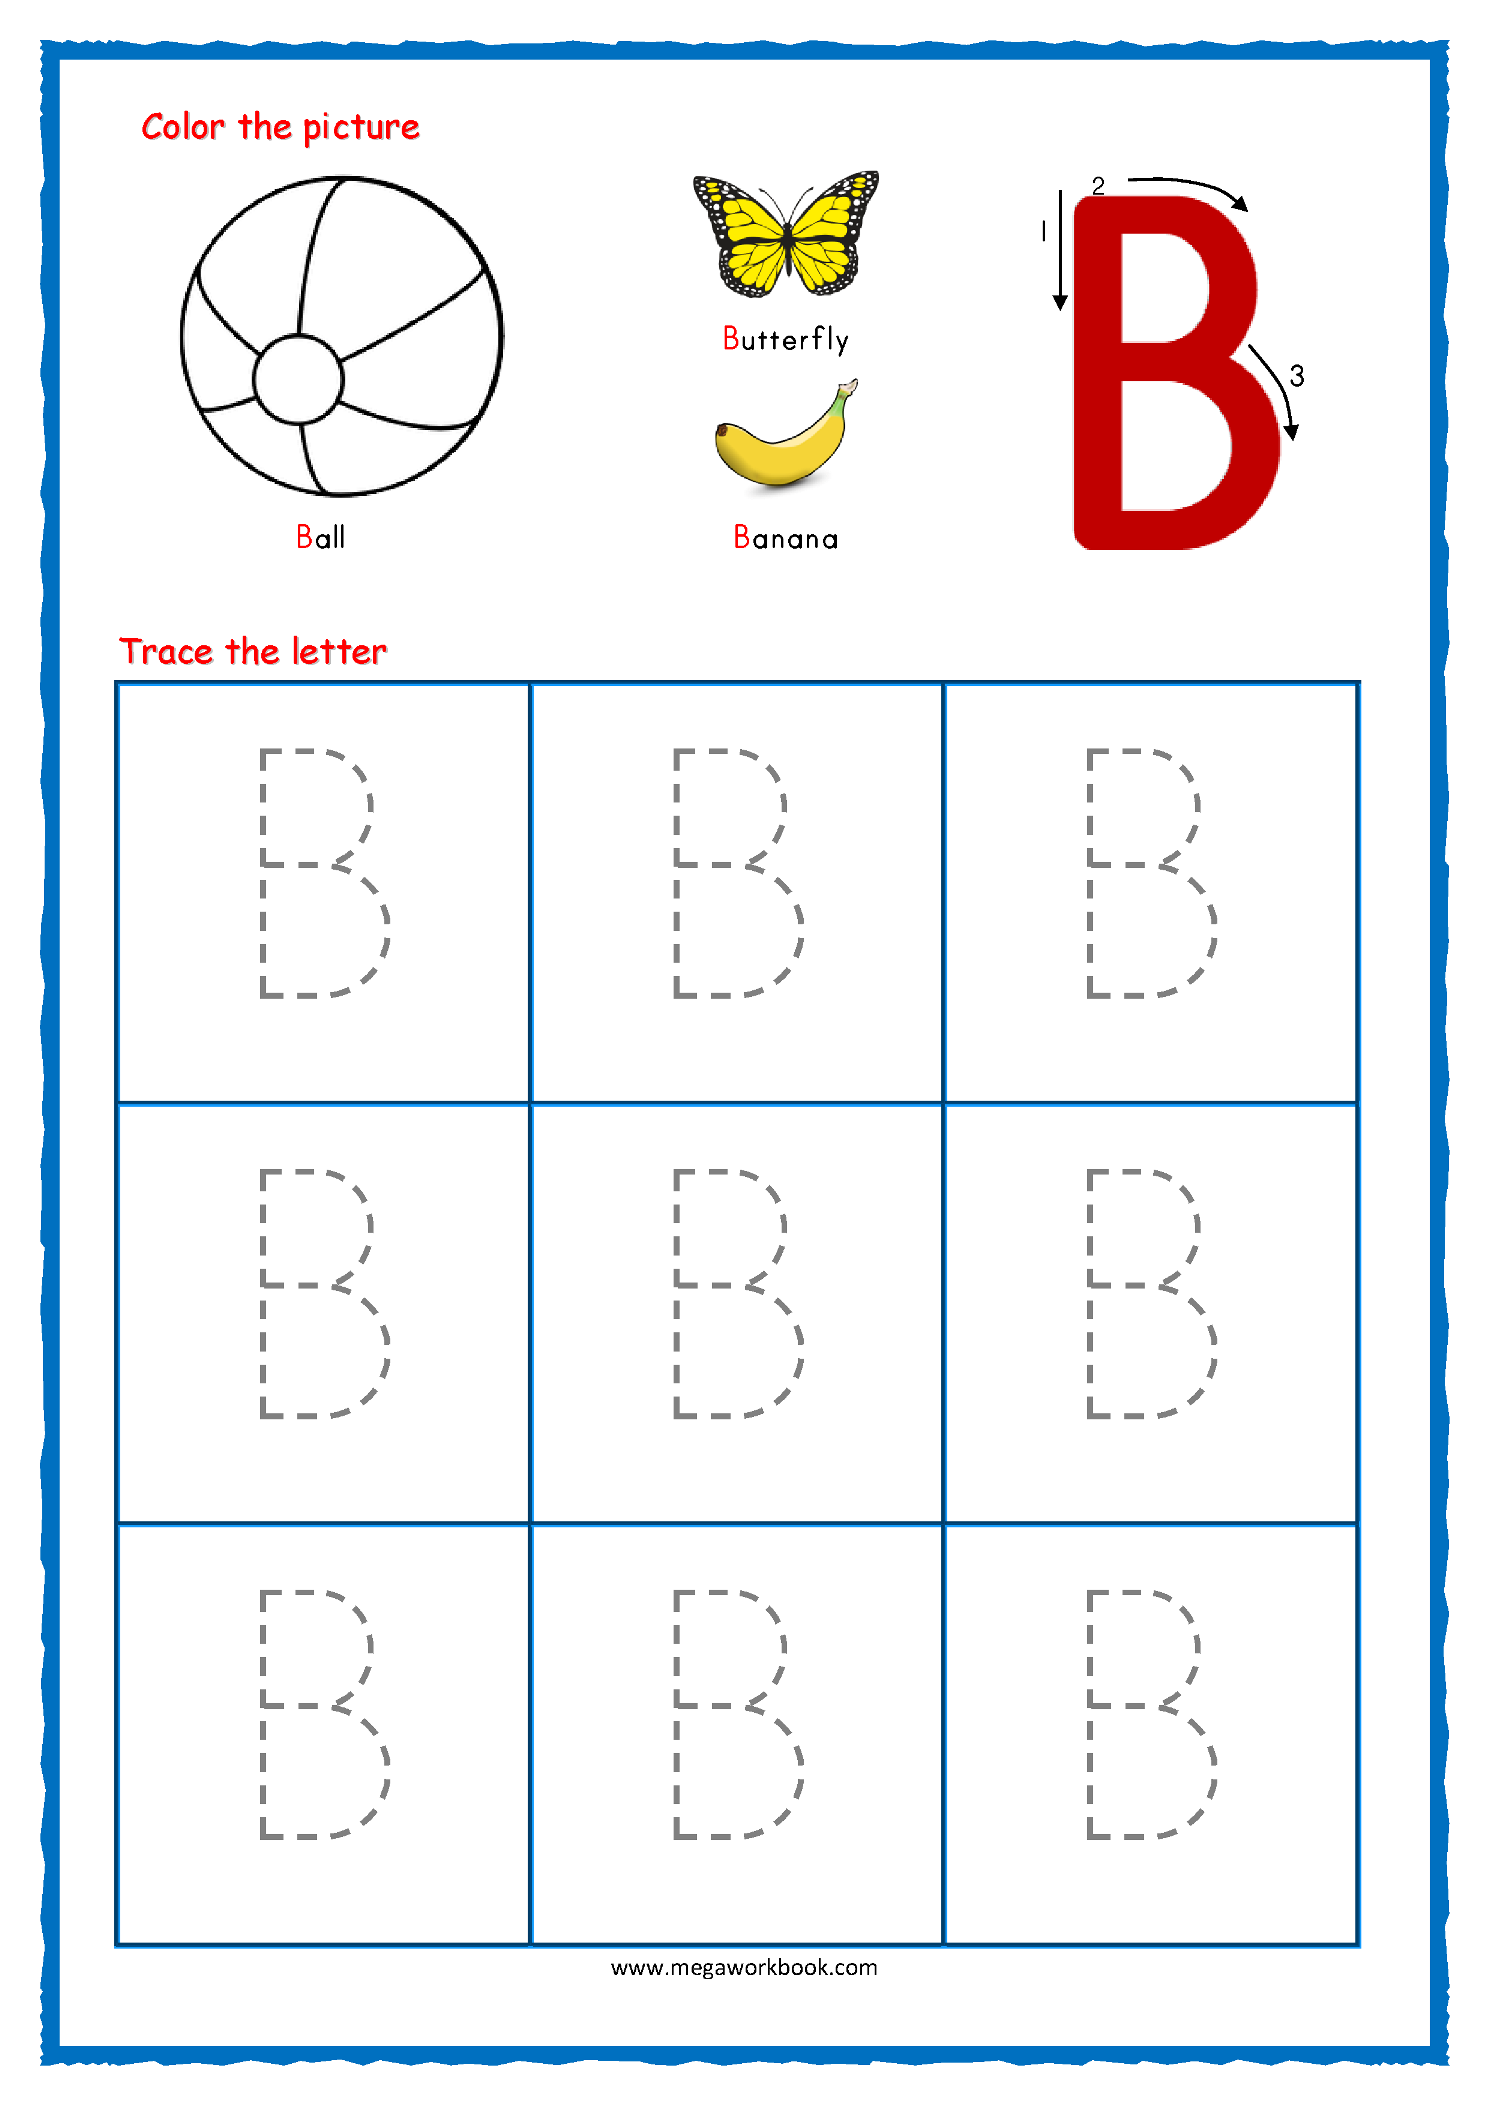 Capital_Letter_Tracing_With_Crayons_02_Alphabet_B Coloring inside Alphabet Tracing Worksheets Pdf